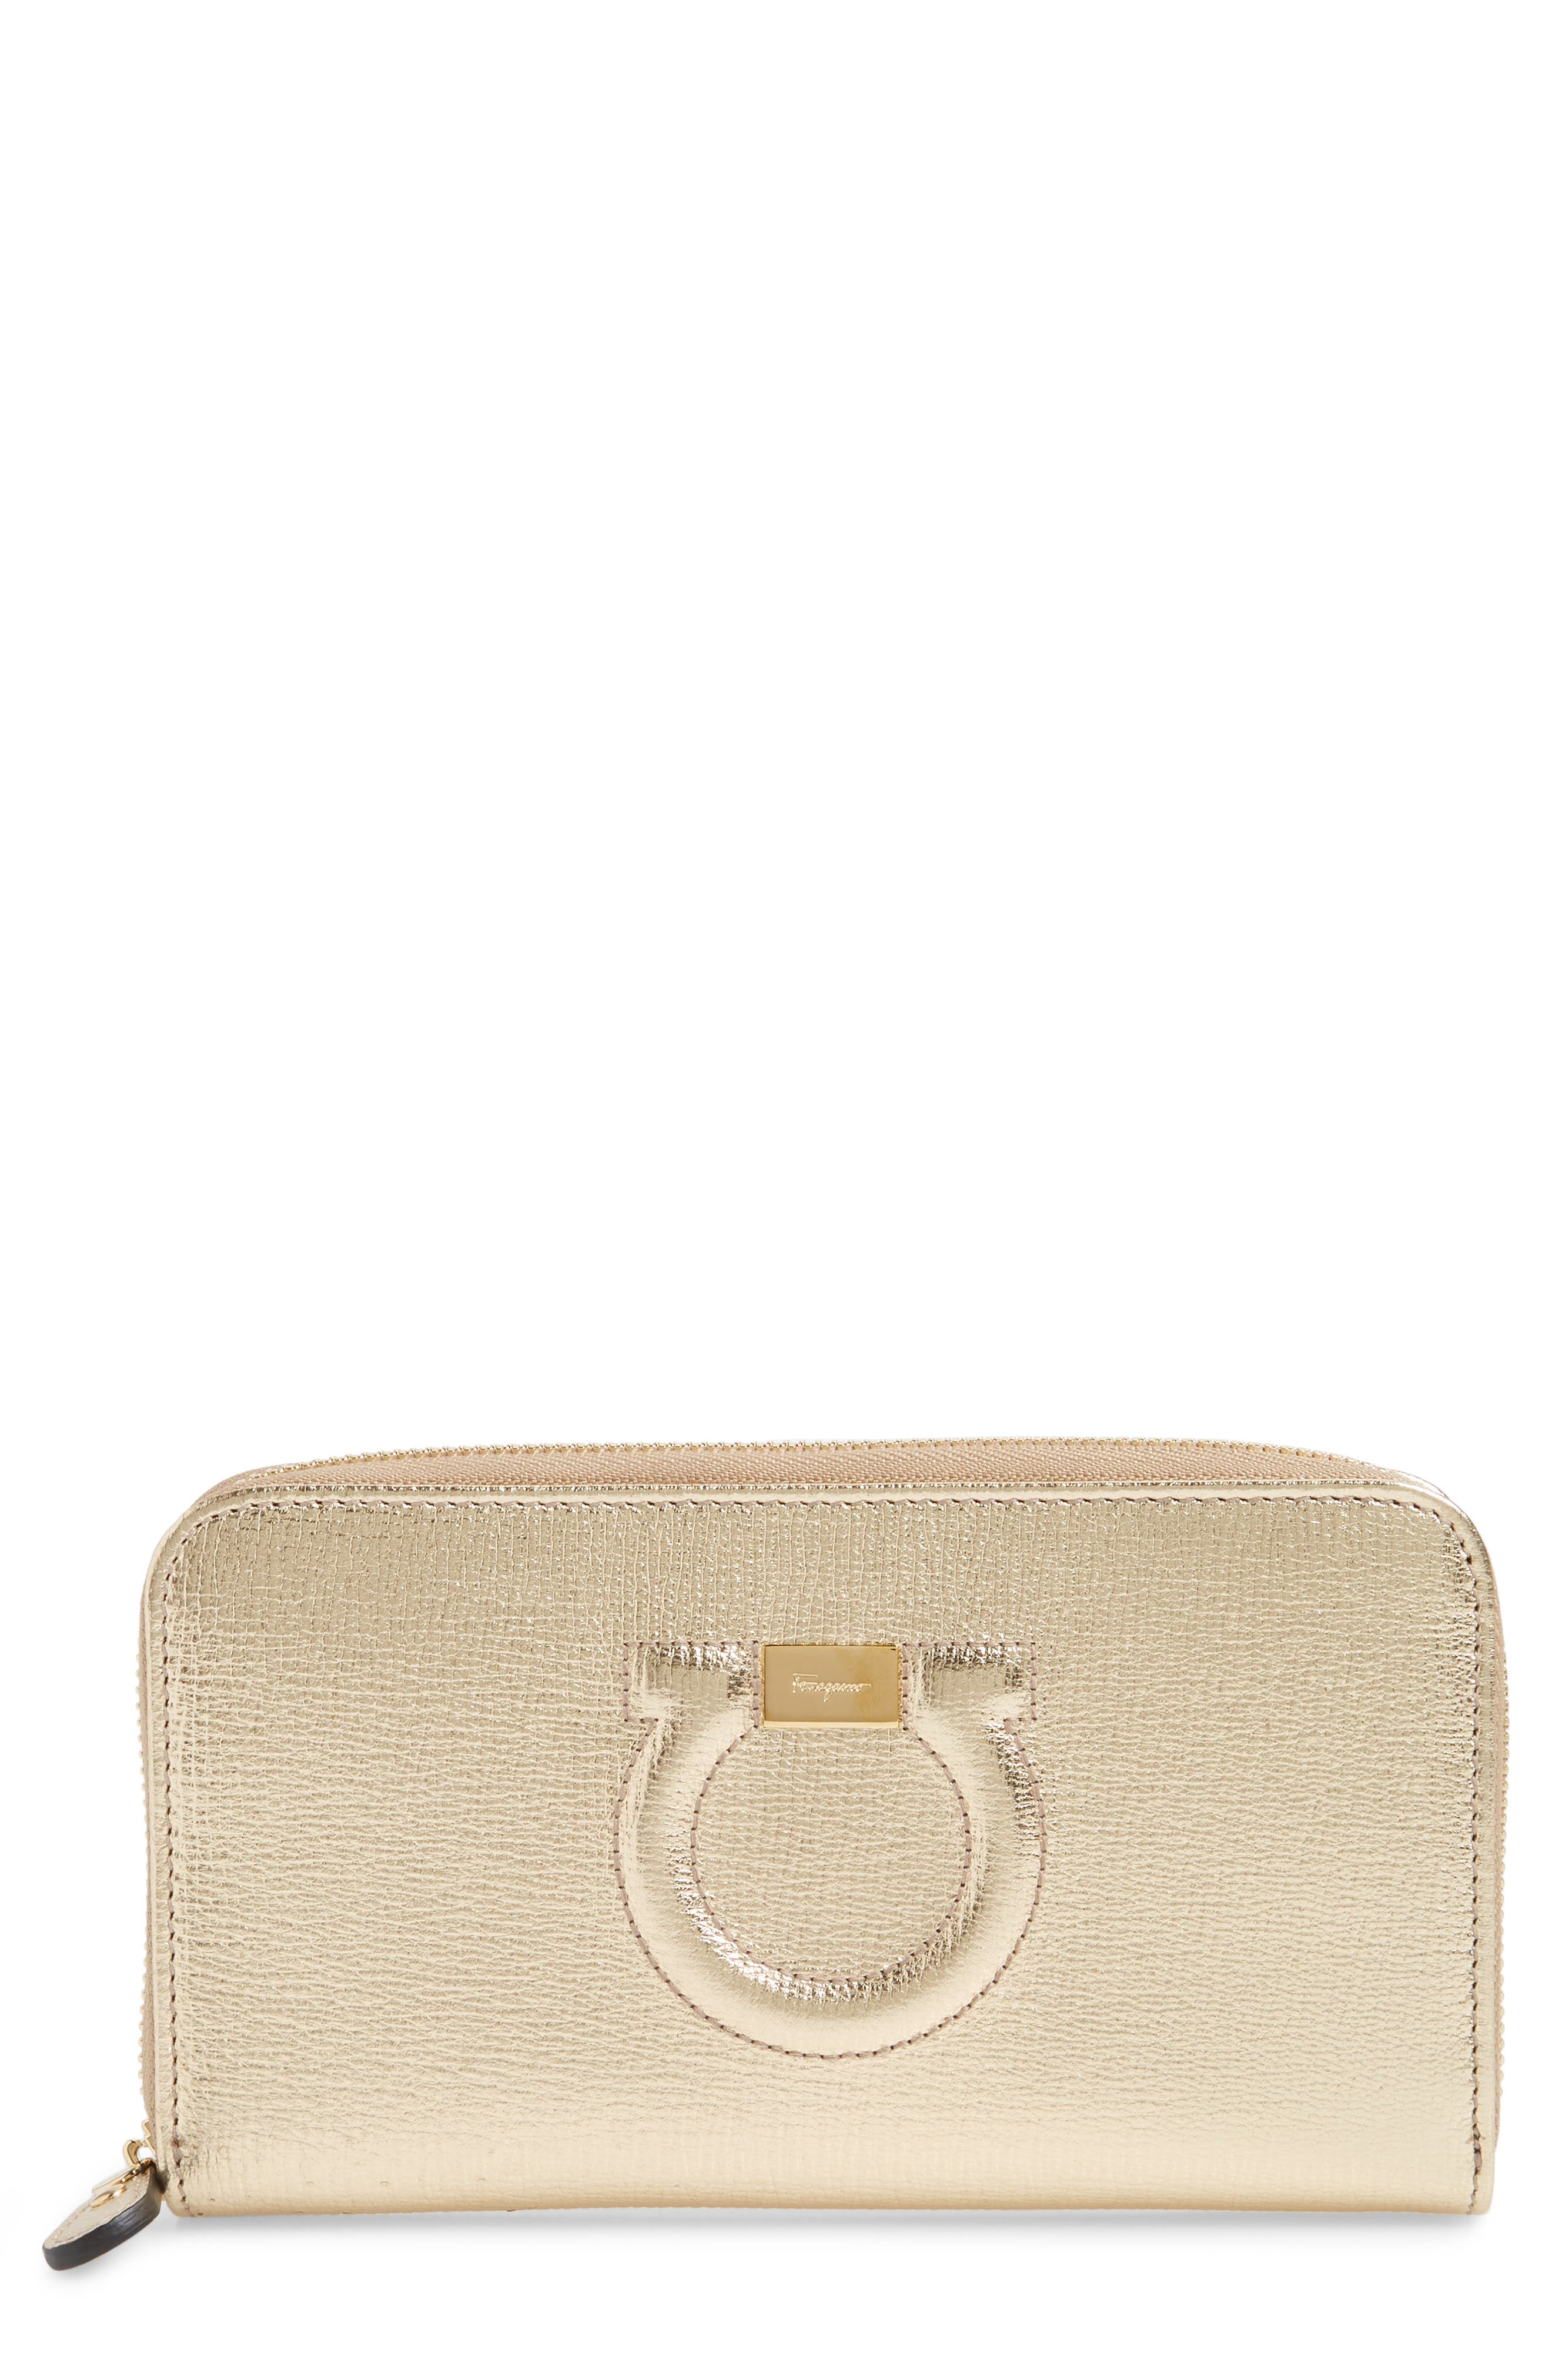 Quilted Gancio Leather Zip Around Wallet,                         Main,                         color, GOLD METALLIC LEATHER